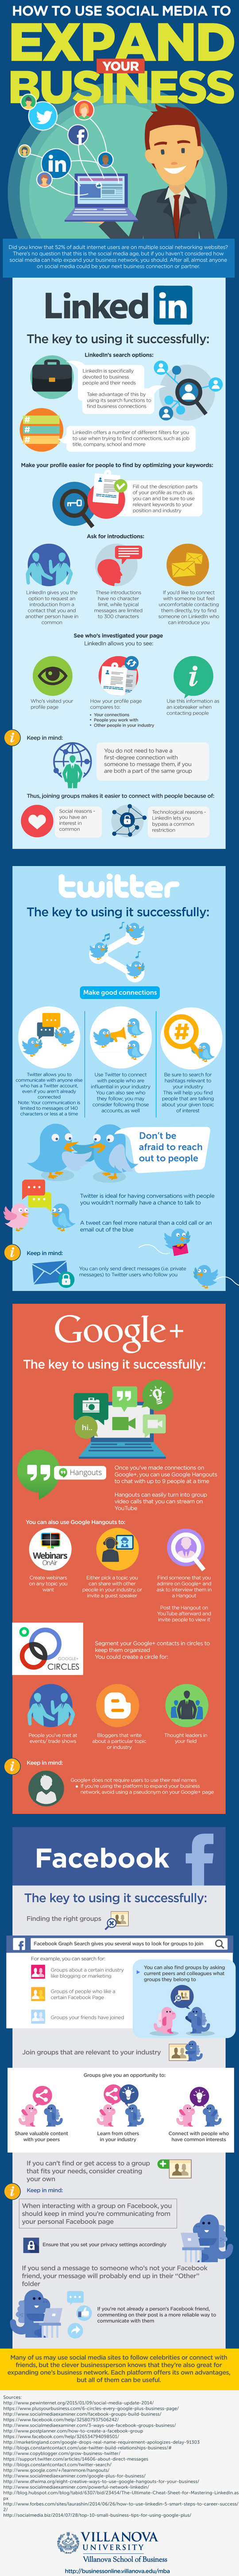 Social Media Mapping Infographic